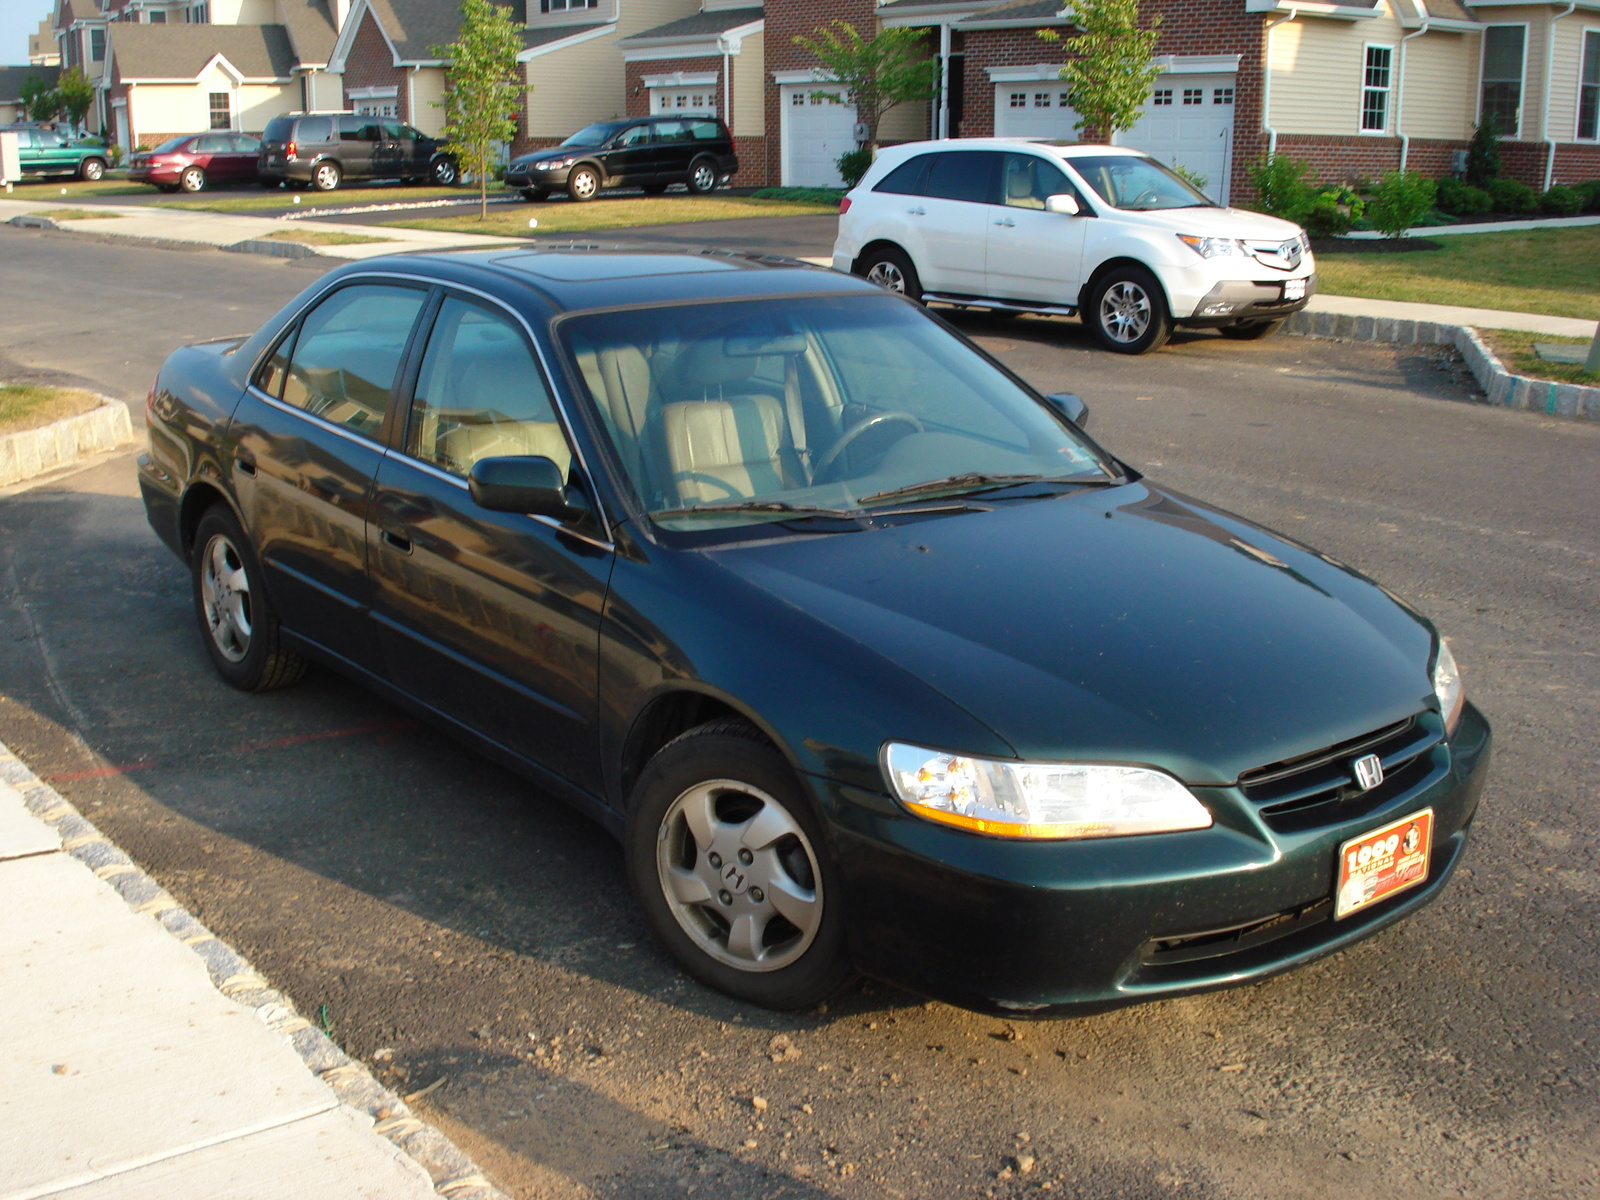 1999 Honda Accord EX, Picture of 1999 Honda Accord 4 Dr EX Sedan, exterior